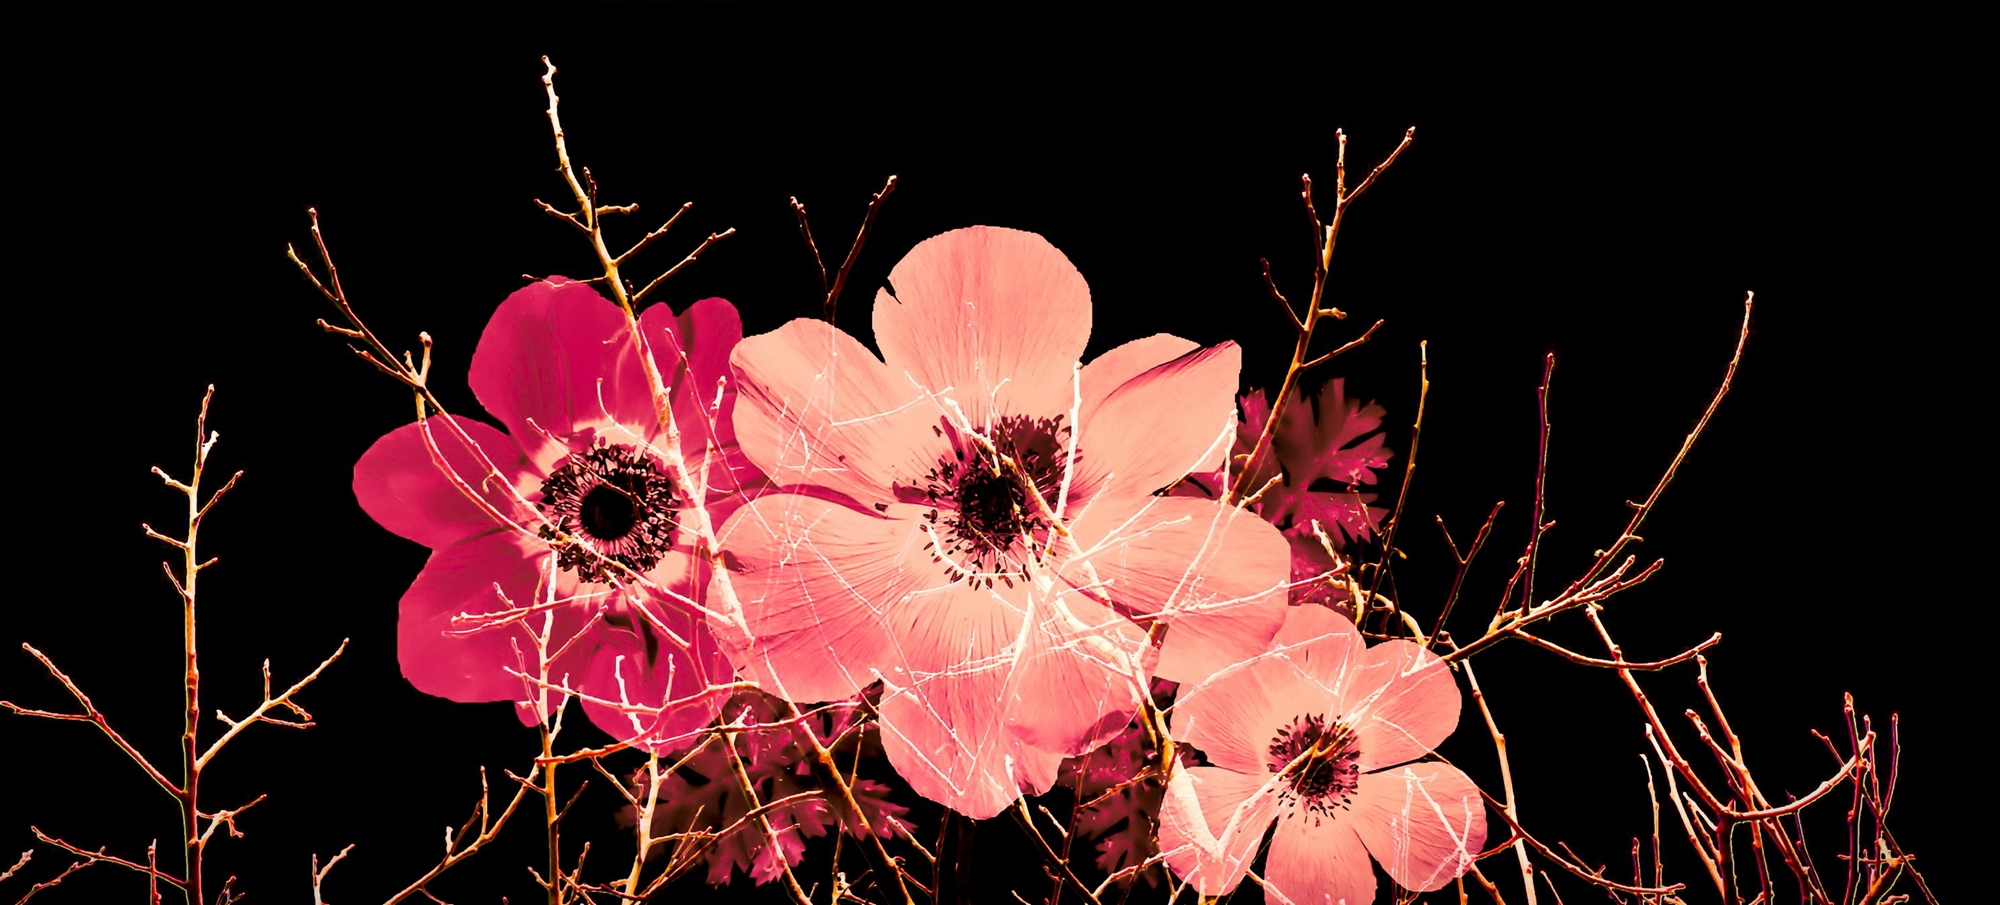 Photo Manipulation With Branches And Anemones-